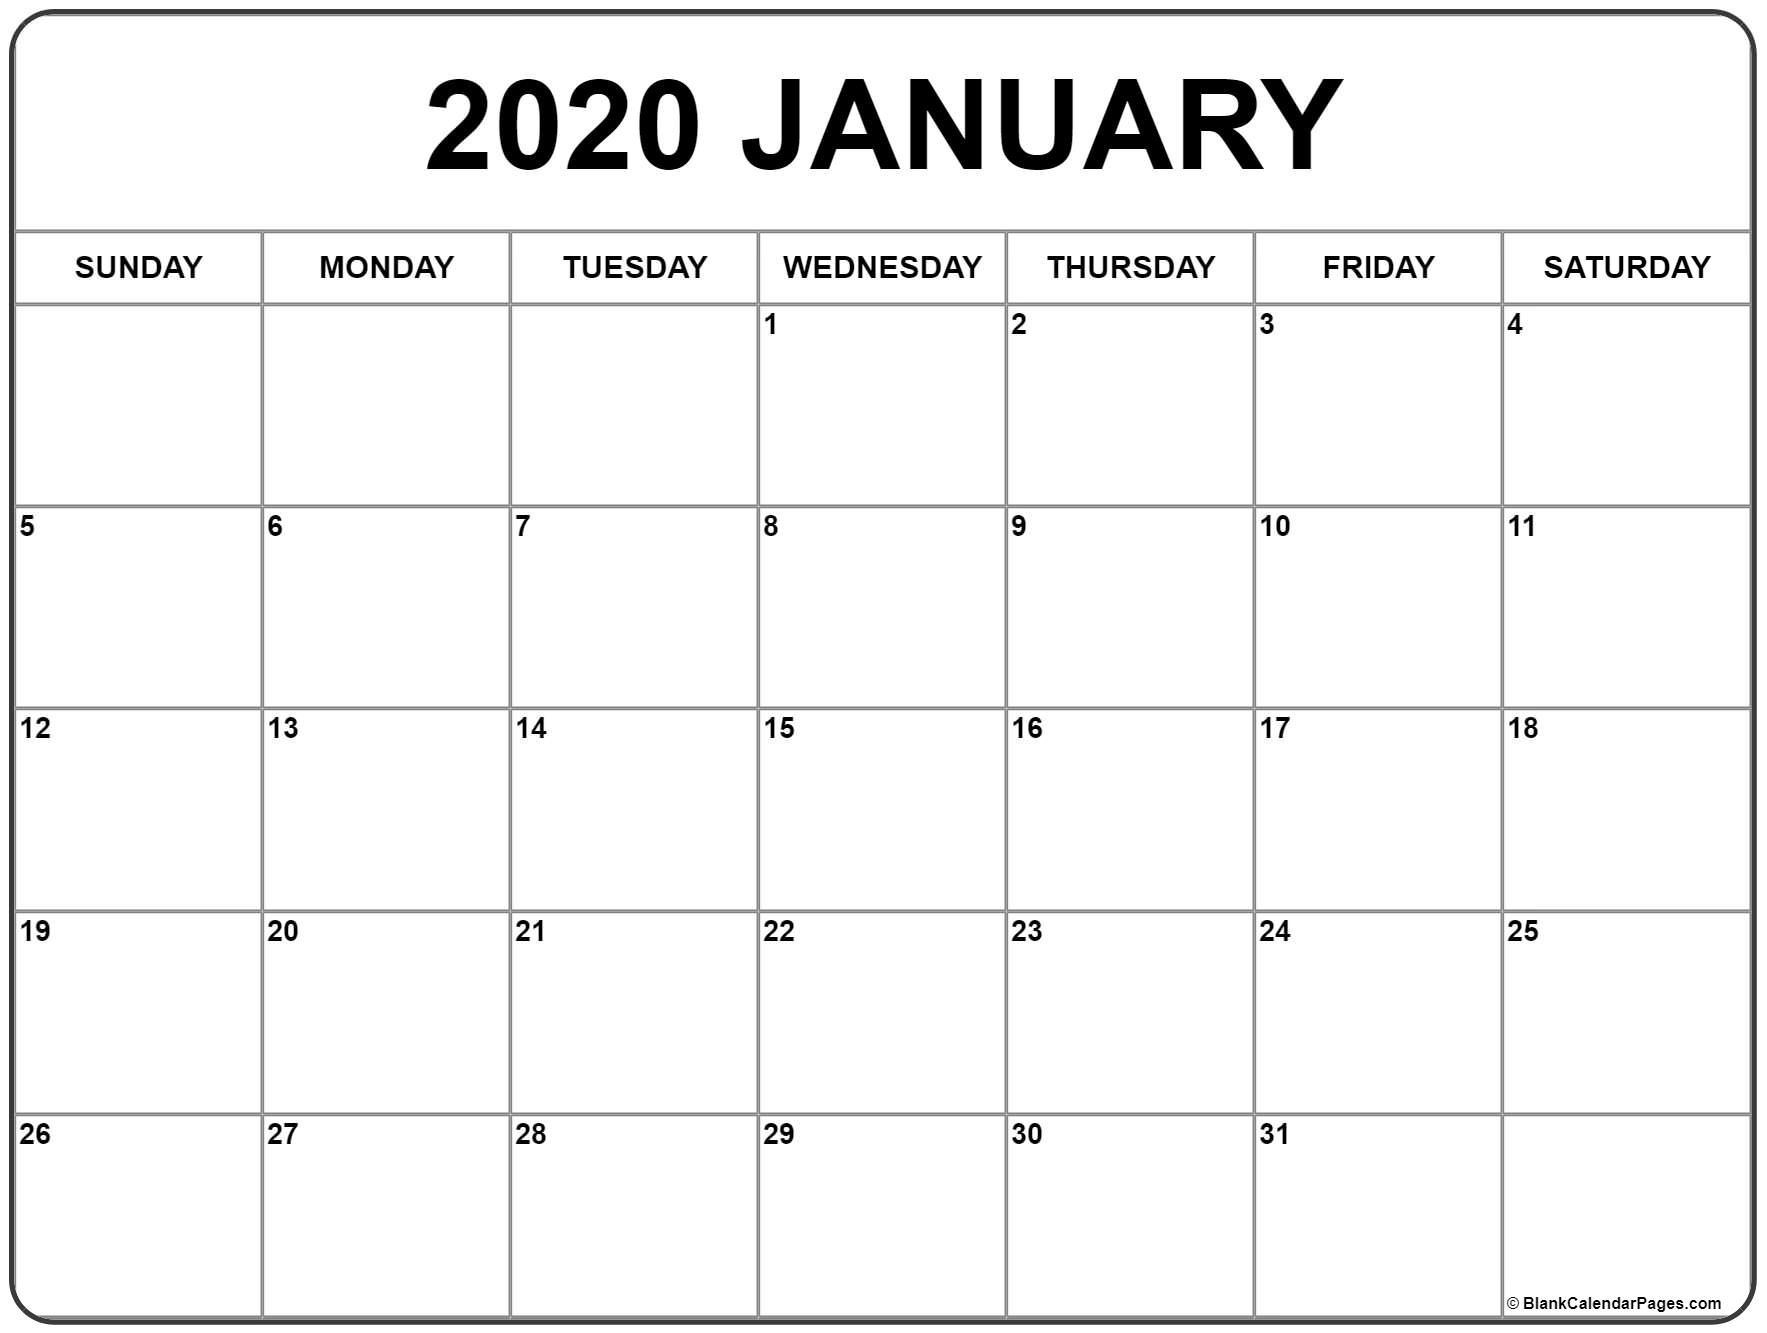 January 2020 Calendar | Free Printable Monthly Calendars  Free Download Printable 2020 Monthly Calendar